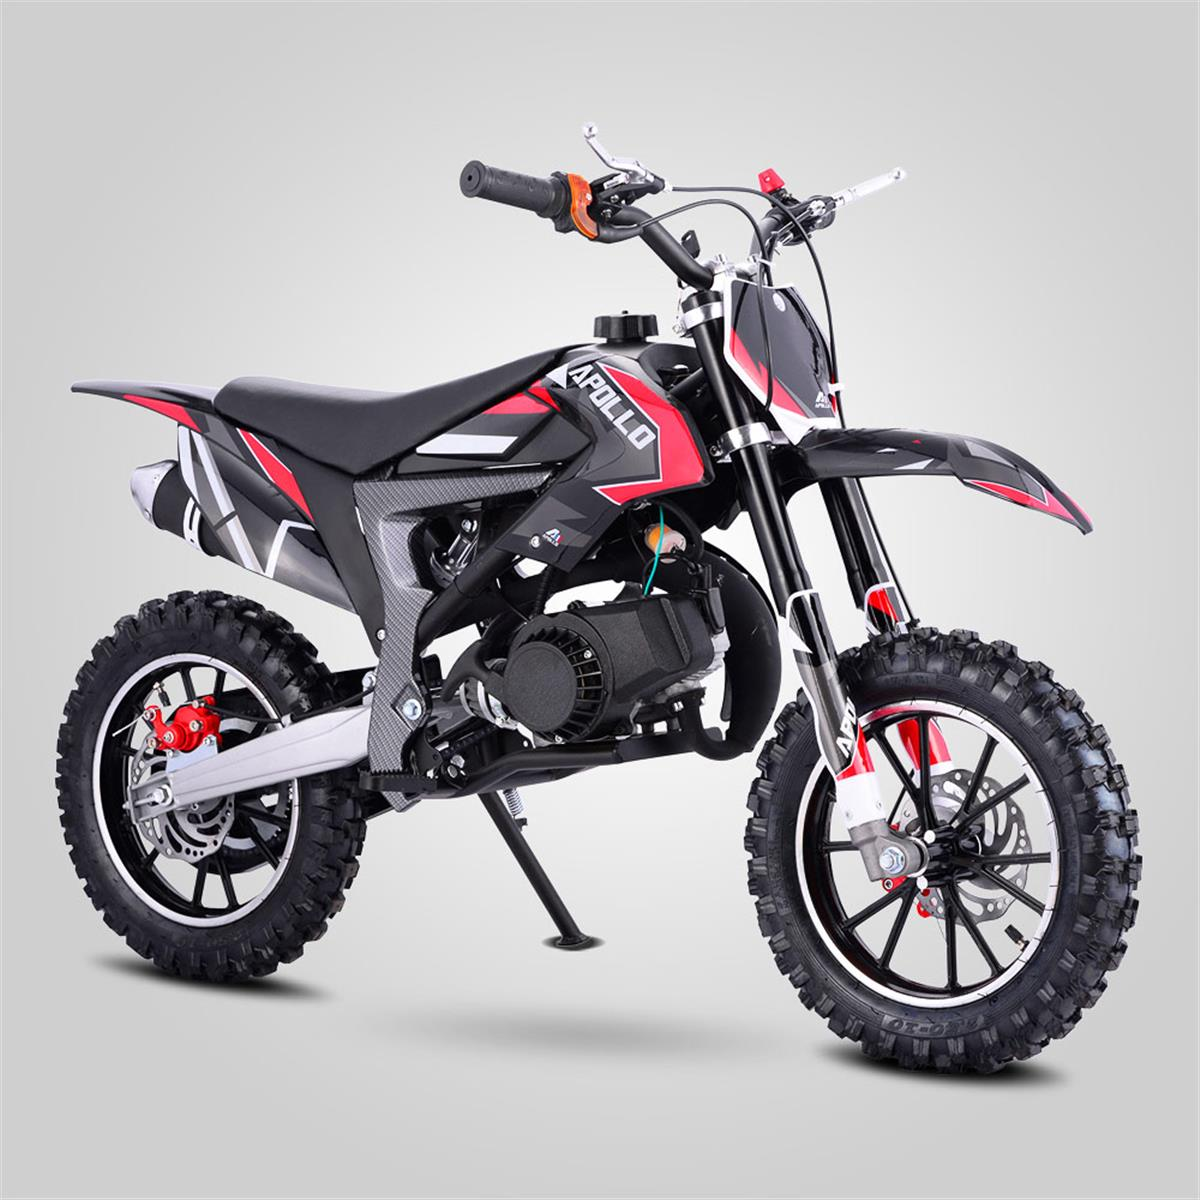 dirt bike gallery wallpaper and free download. Black Bedroom Furniture Sets. Home Design Ideas